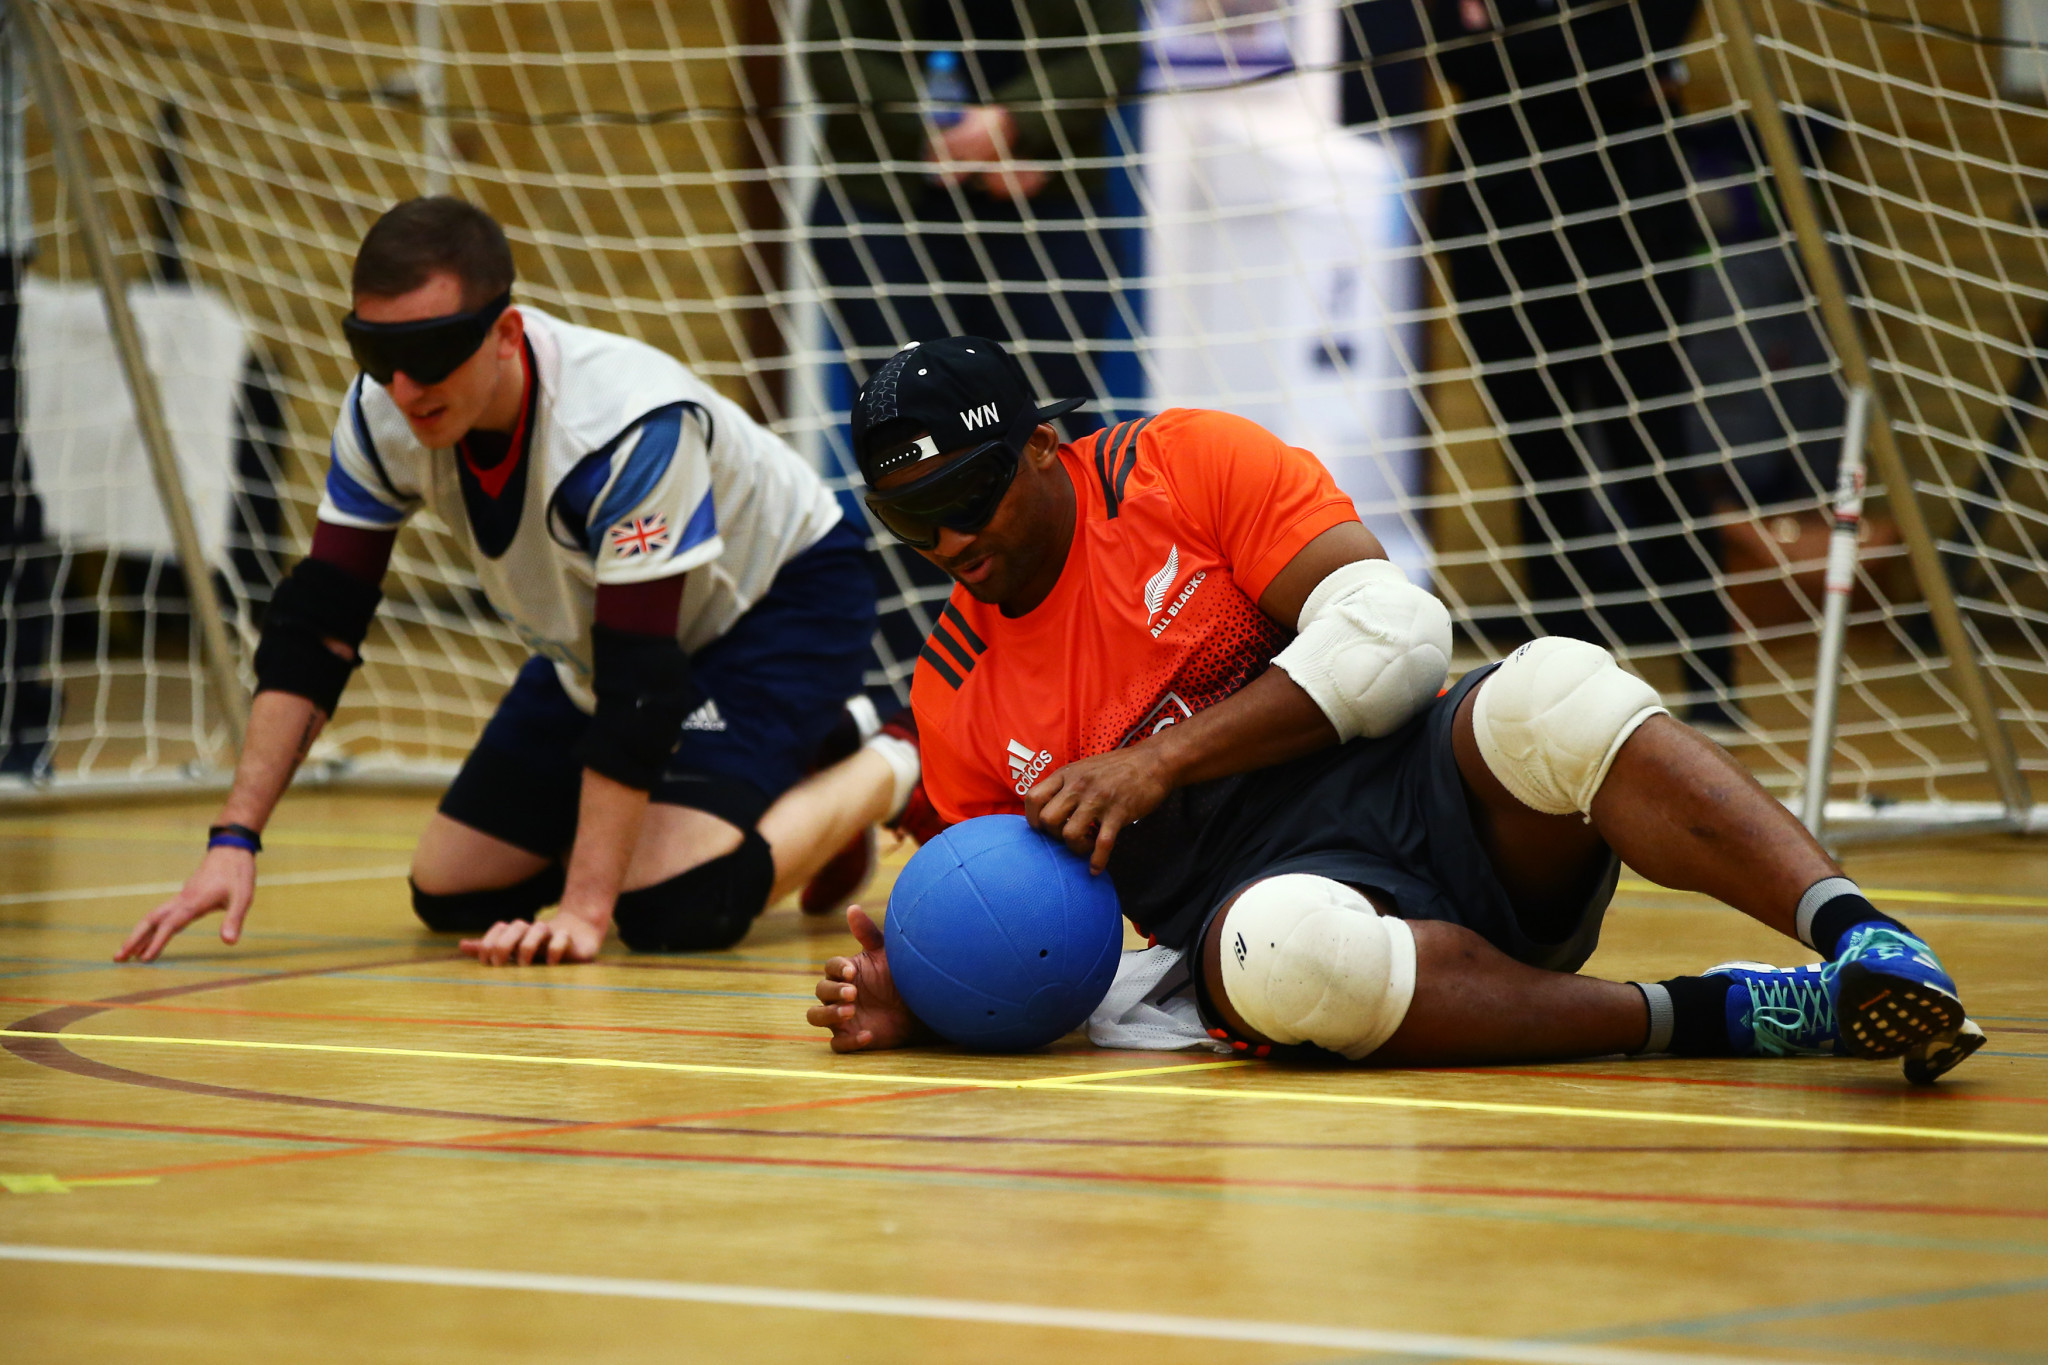 The IBSA Goalball European Championships are due to begin in Poland, a sport played by blind and visually impaired players ©Getty Images